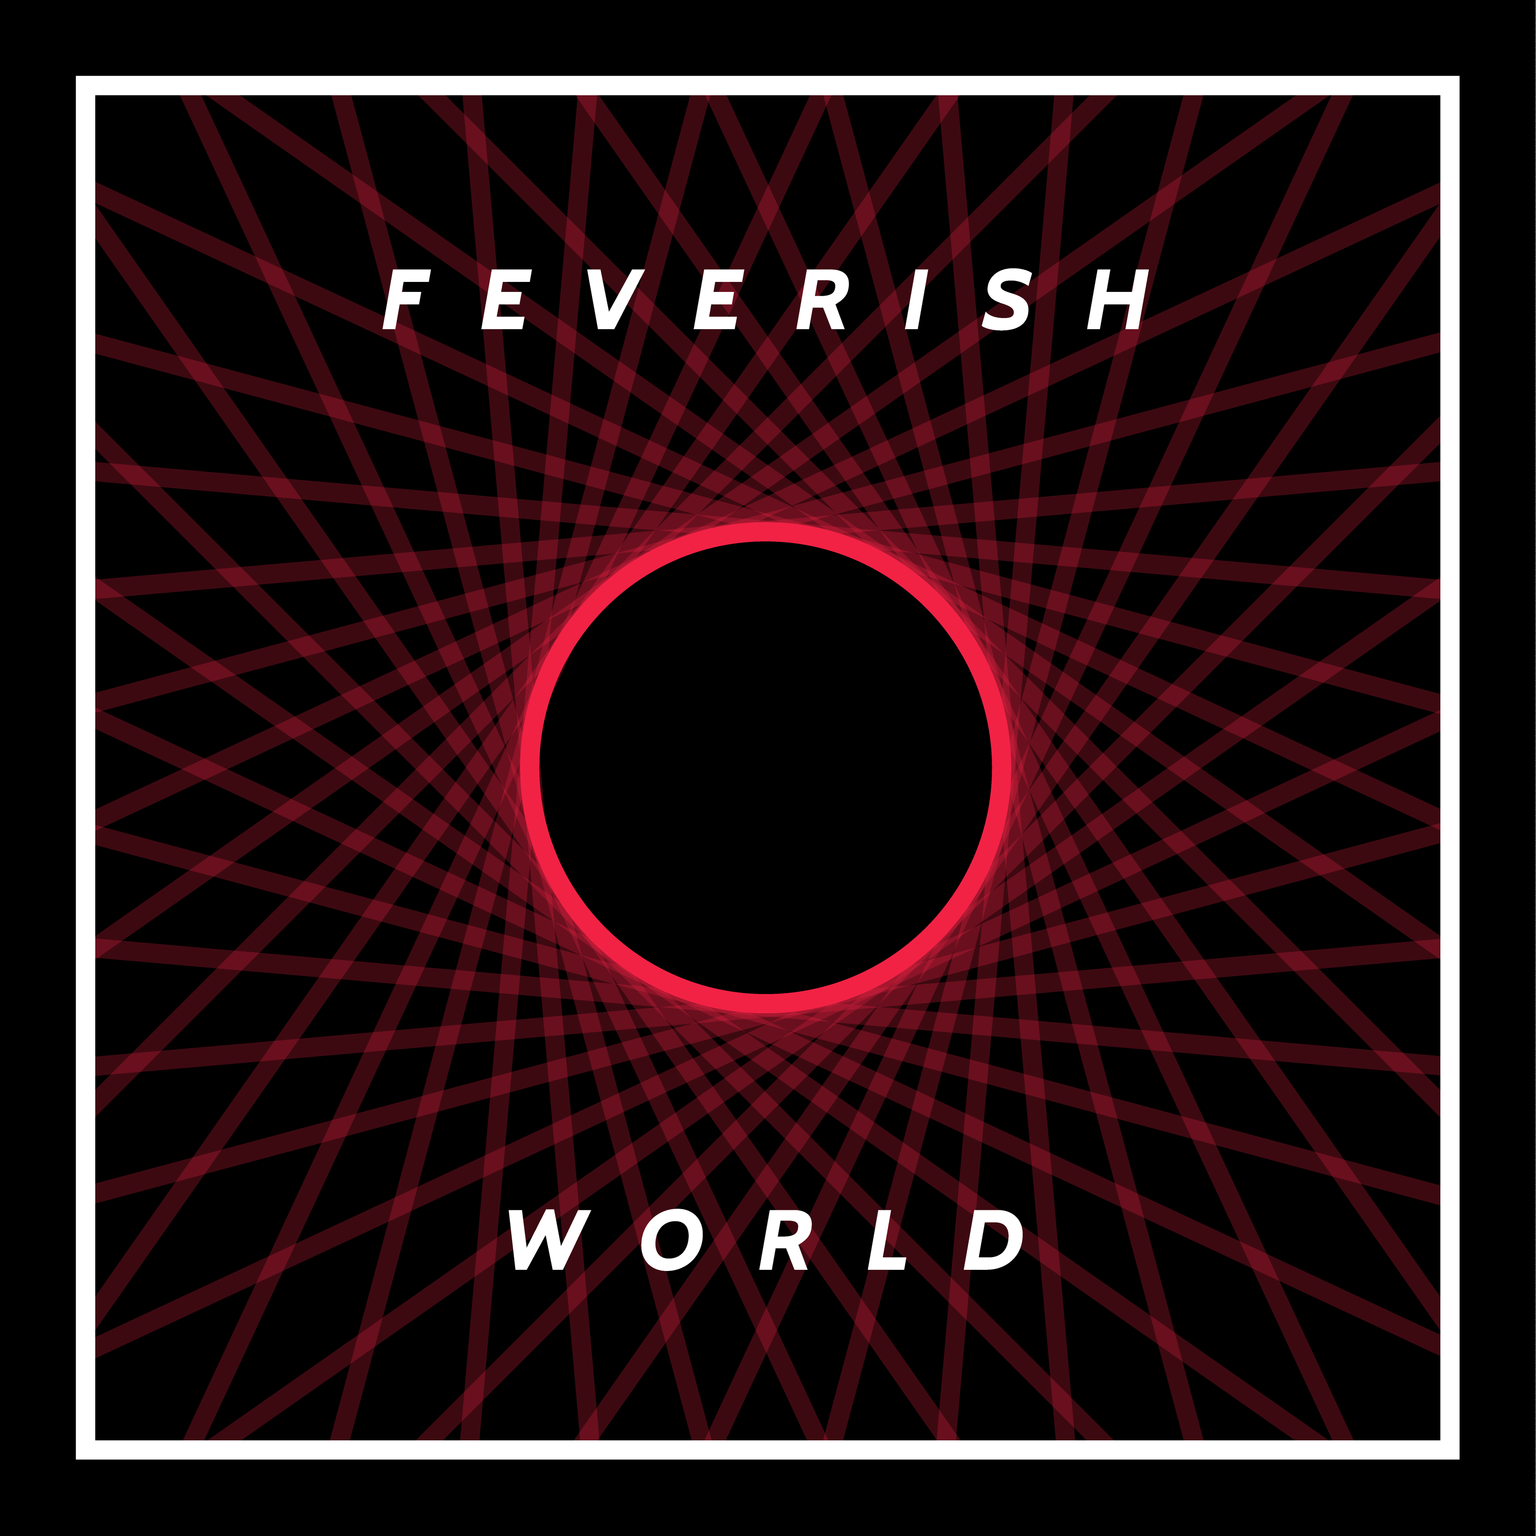 Feverish World: Arts & Sciences of Collective Survival - A symposium and public arts event exploring ways to meet the challenges of the coming 50 years. For information, click on links elsewhere on this site.